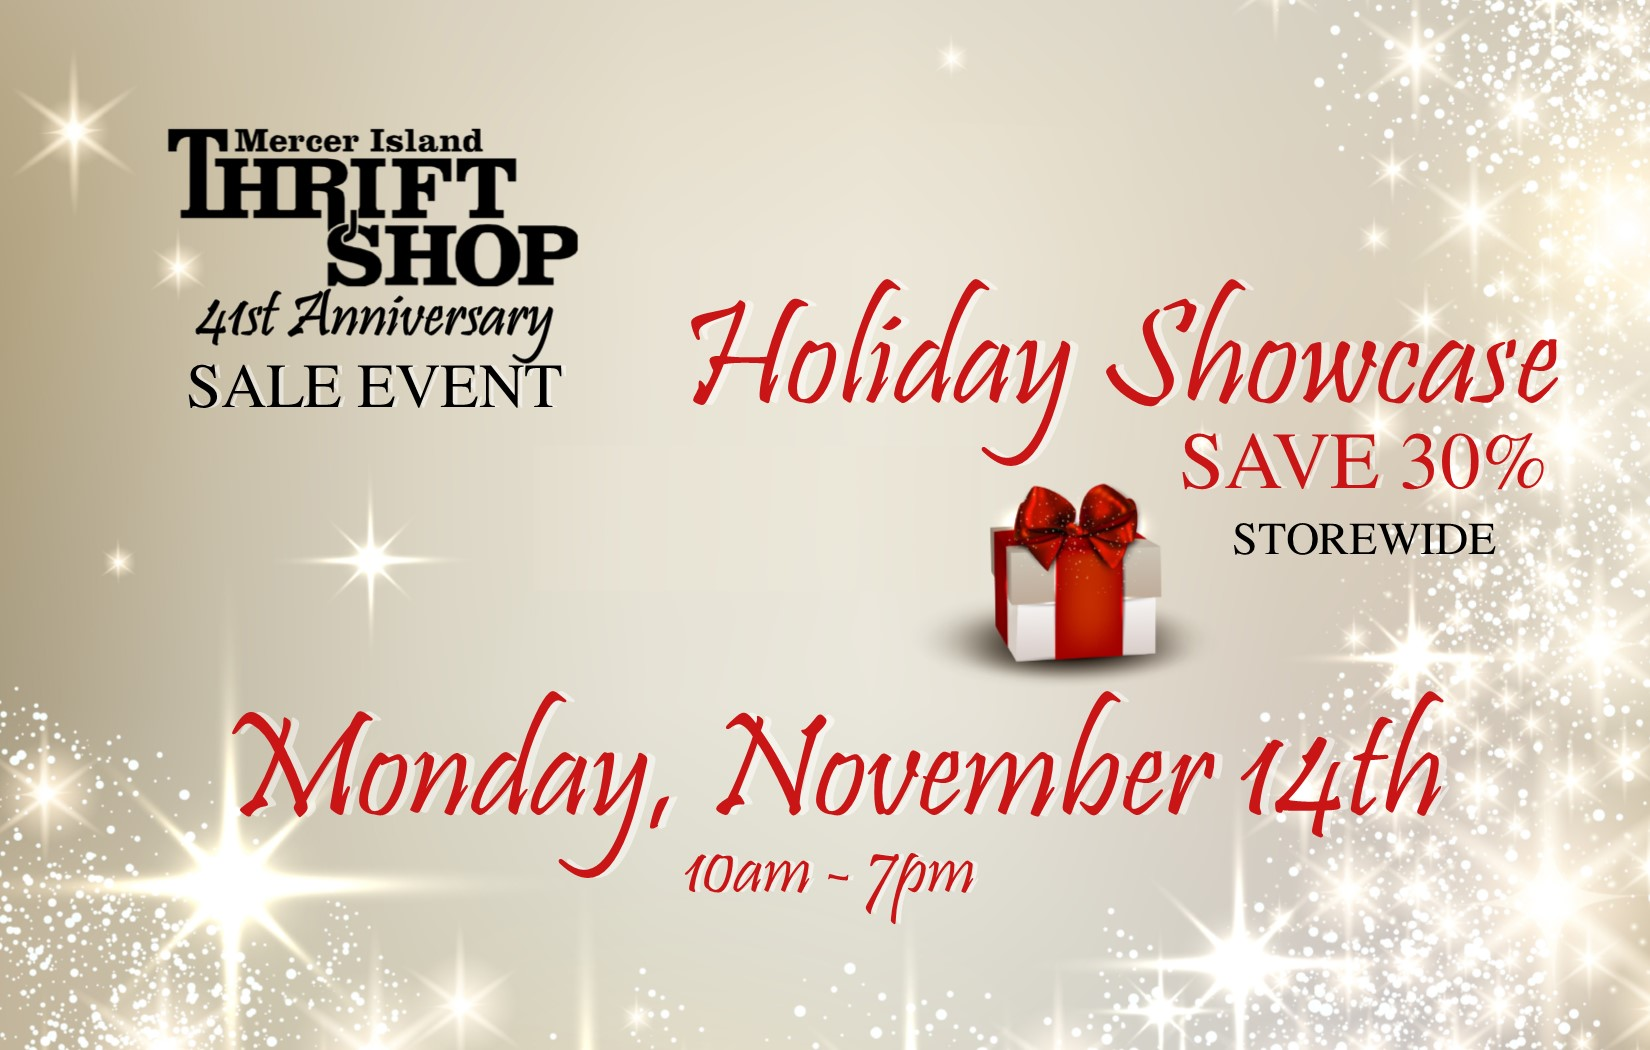 41st Anniversary Holiday Showcase